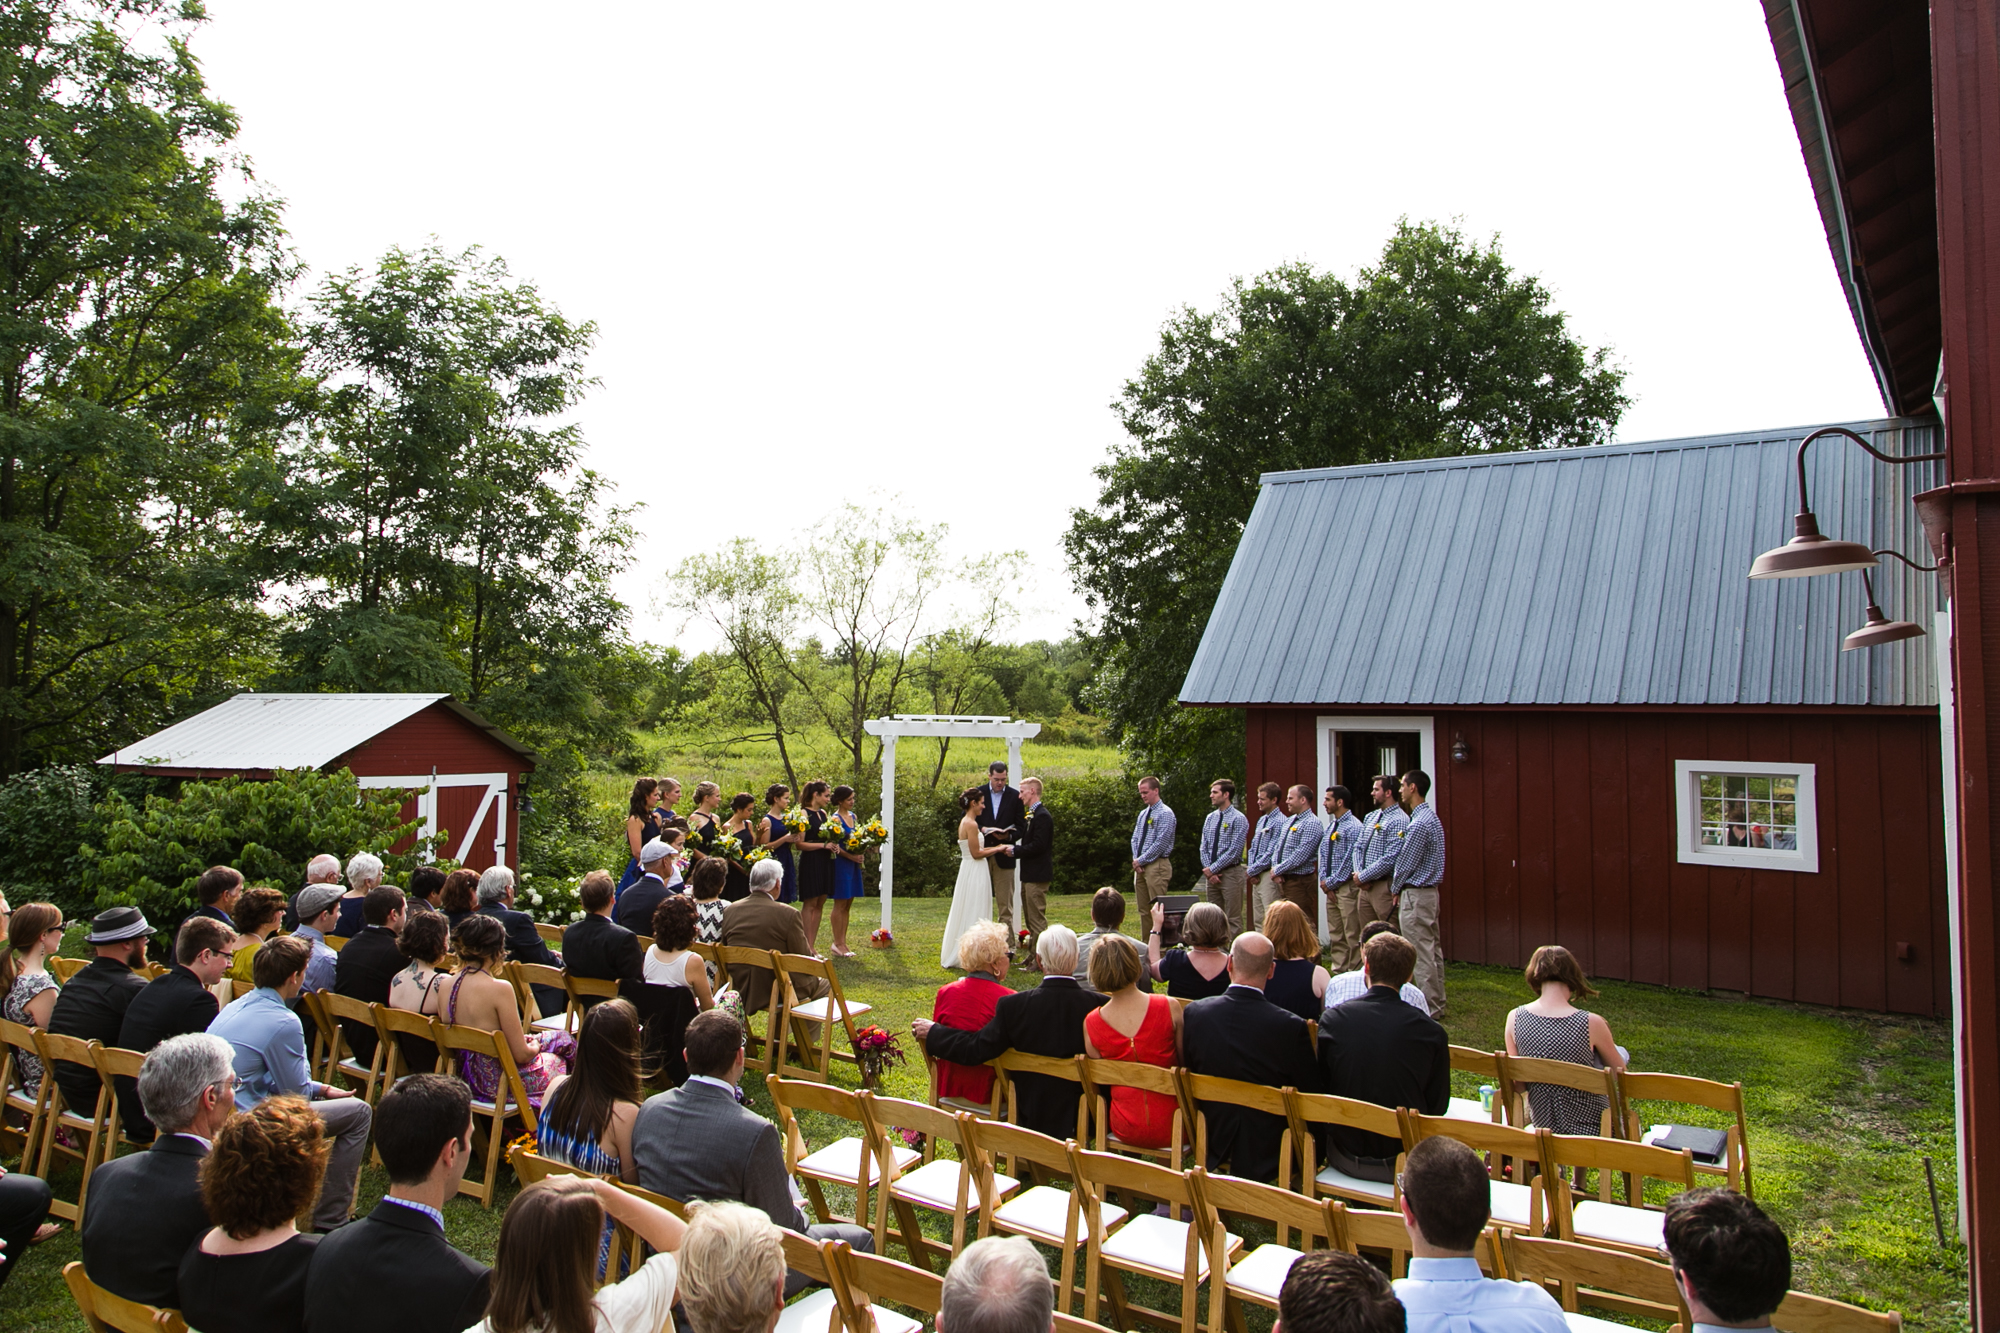 Photos of a rustic wedding ceremony at Maplestone Inn in New Paltz, NY by Jeff Lundstrom Photography